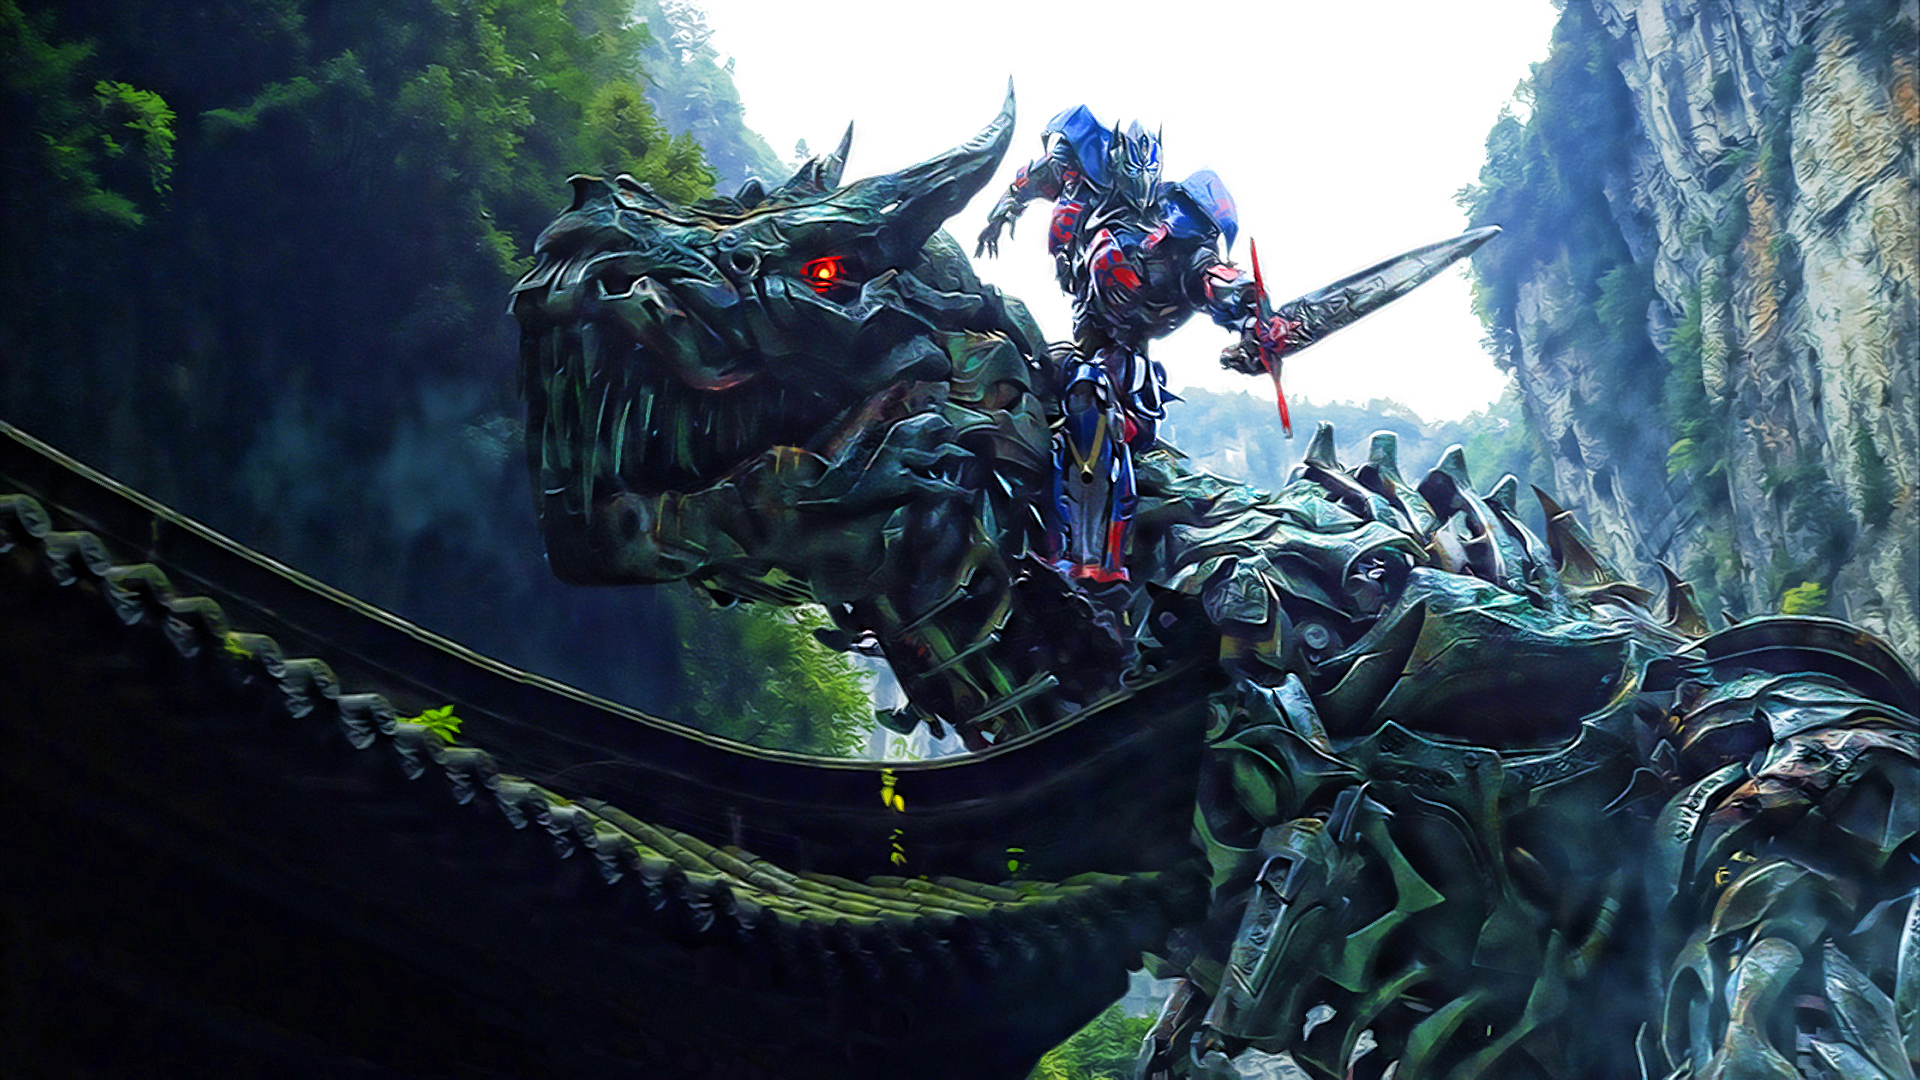 Transformers Backgrounds Pictures 1920x1080